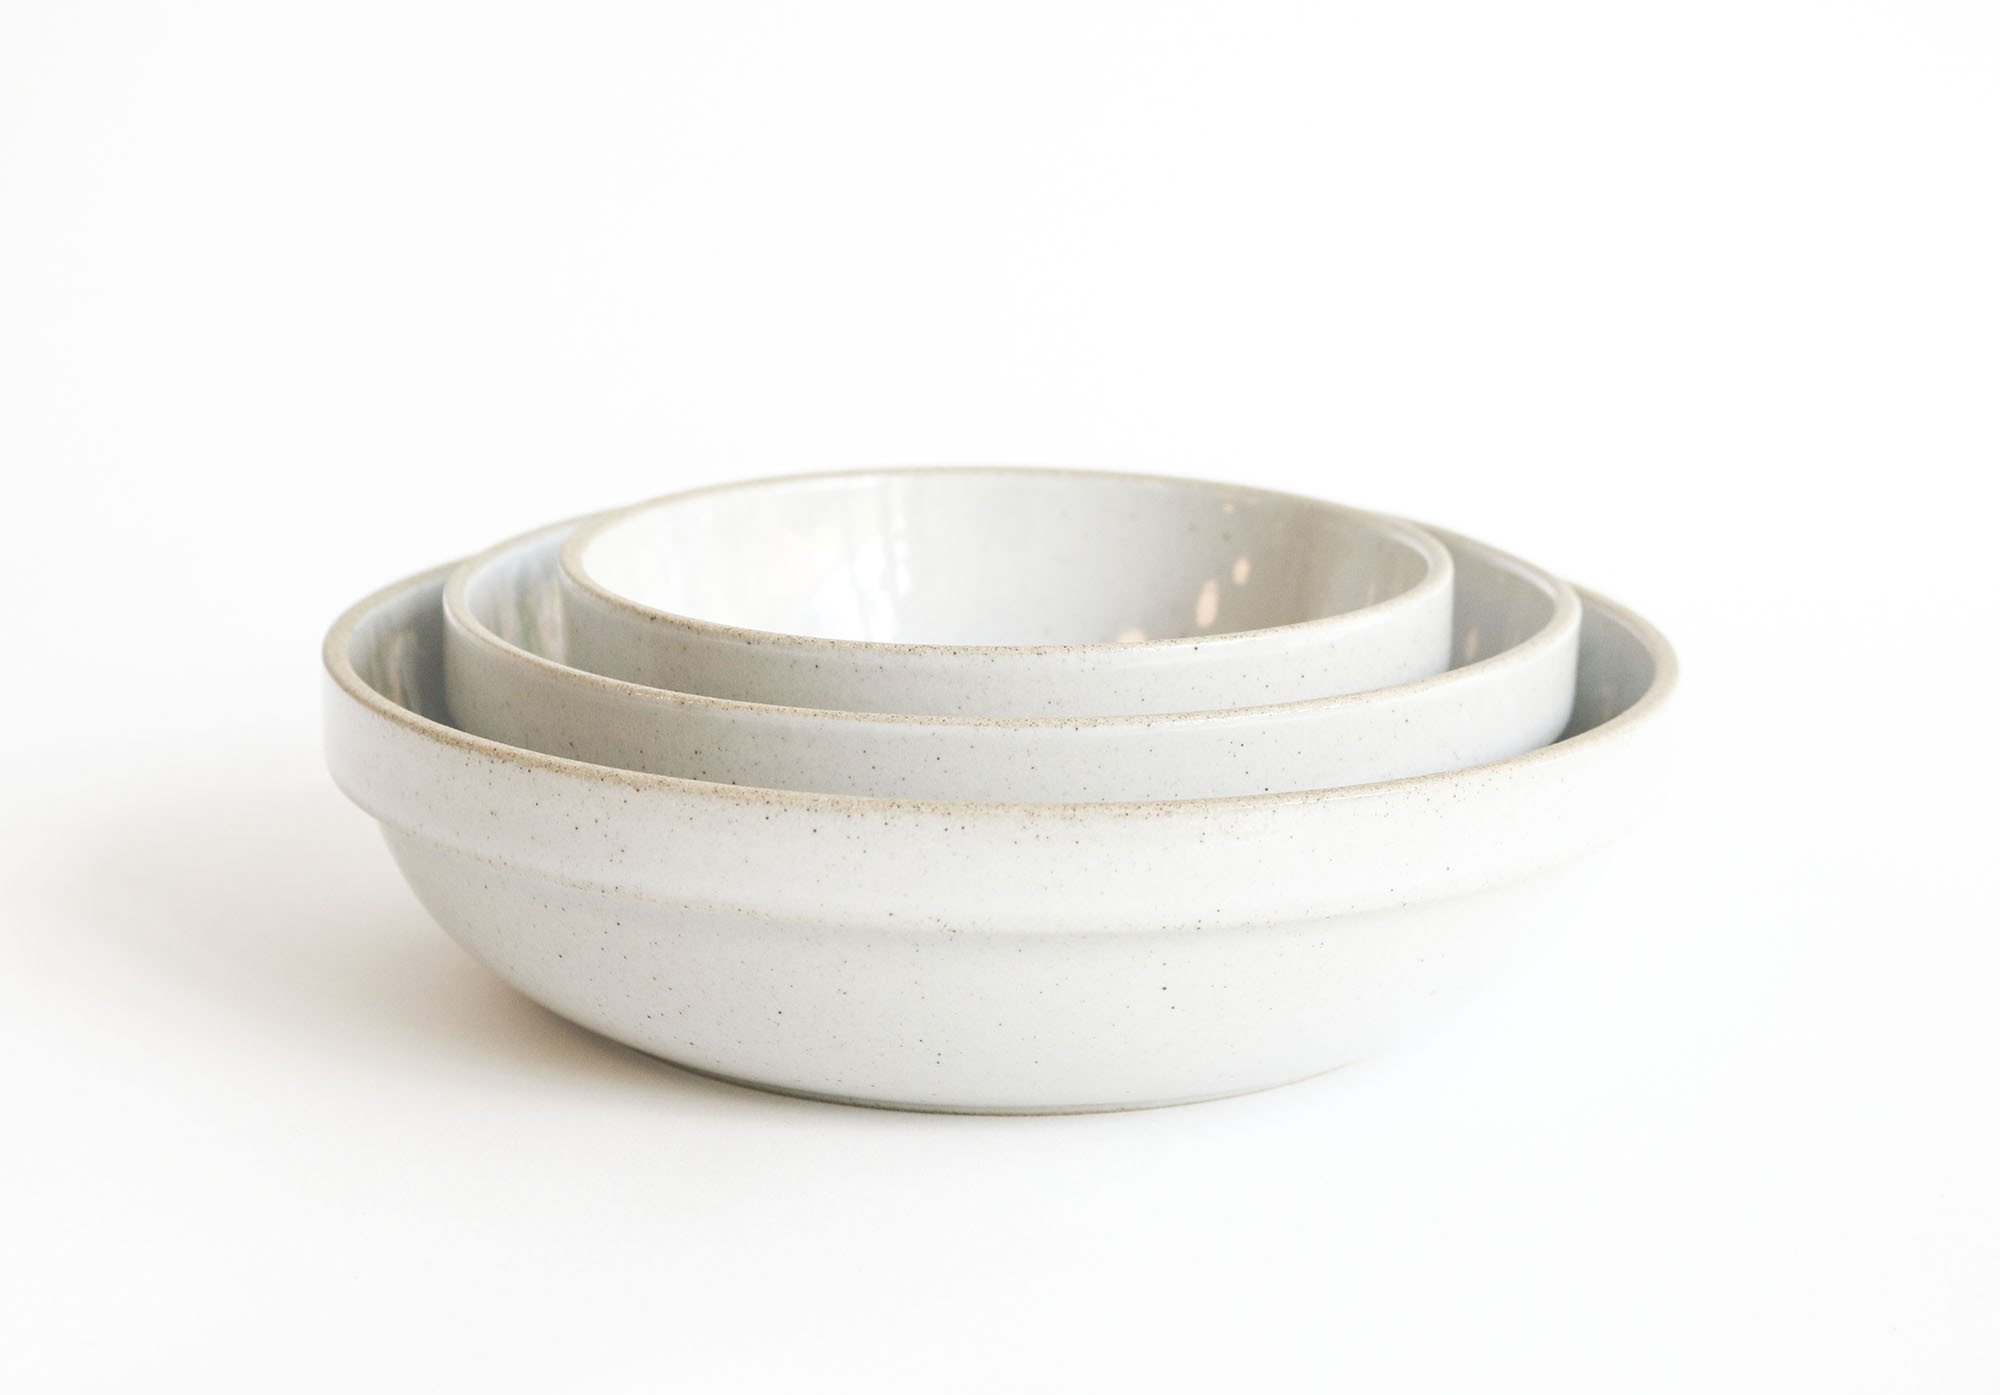 Gloss Grey Bowls  Gloss Grey Rounded Bowls made from Hasami Porcelain.